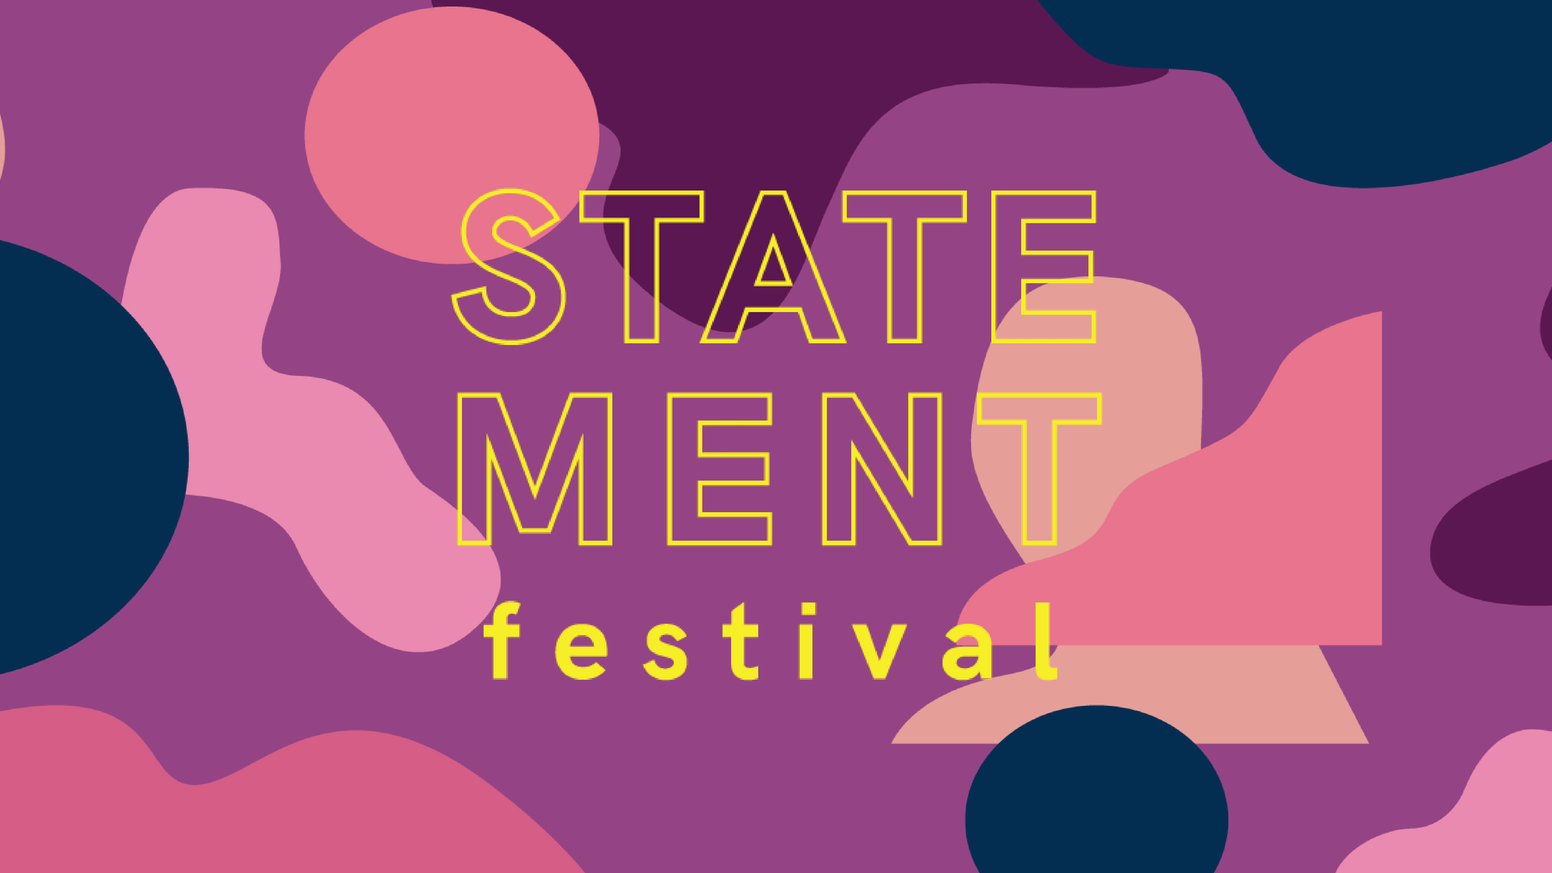 Let's make a statement! Let's make a festival! A Statement Festival!